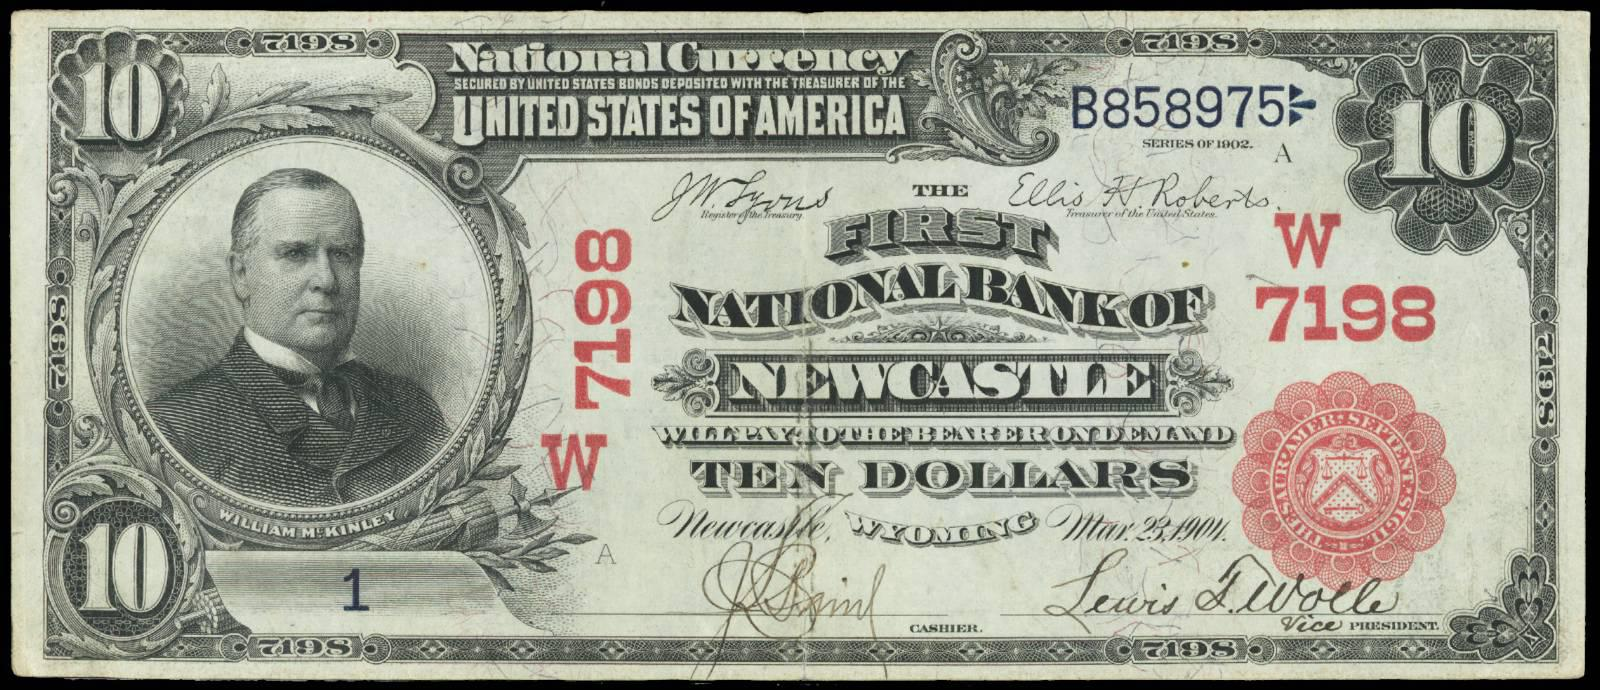 Paper Money Buyers | Old Paper Money | Paper Money Values | Value of